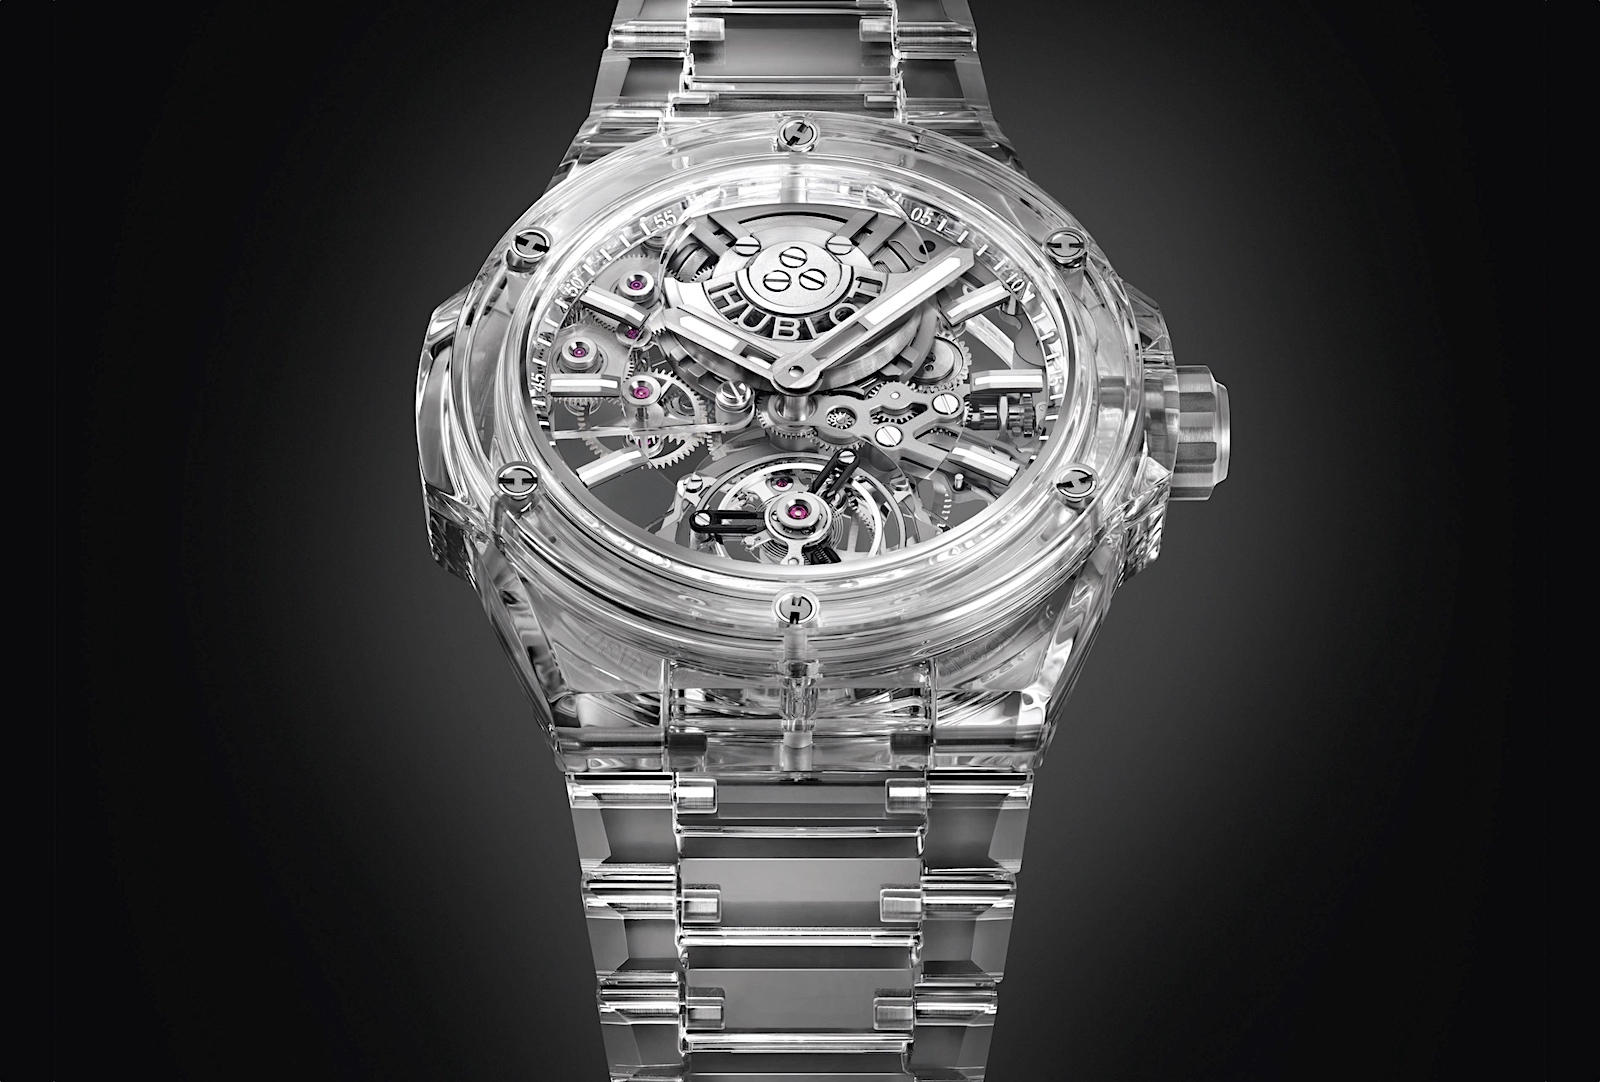 Hublot en Watches and Wonders 2021 - Big Bang Integral Tourbillon Full Sapphire